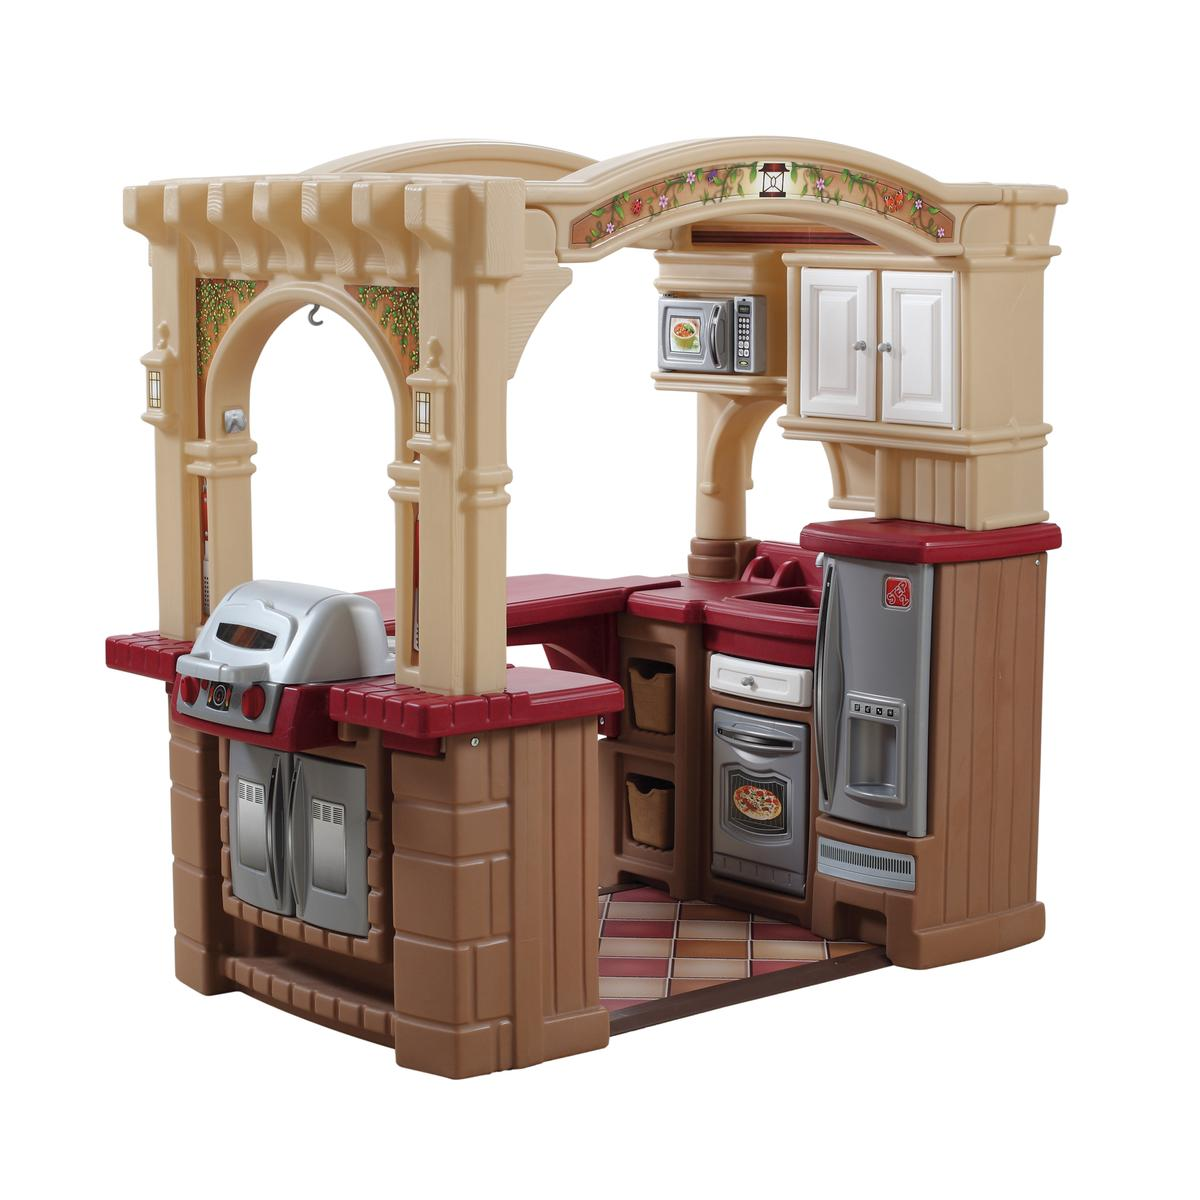 They deserve a play kitchen as grand as the real deal, which is why they'll love this Grand Walk-In Kitchen from Step2. With a sink, stove, oven, microwave, mini fridge, cubbies and a cabinet, it's sure to keep them entertained for hours.